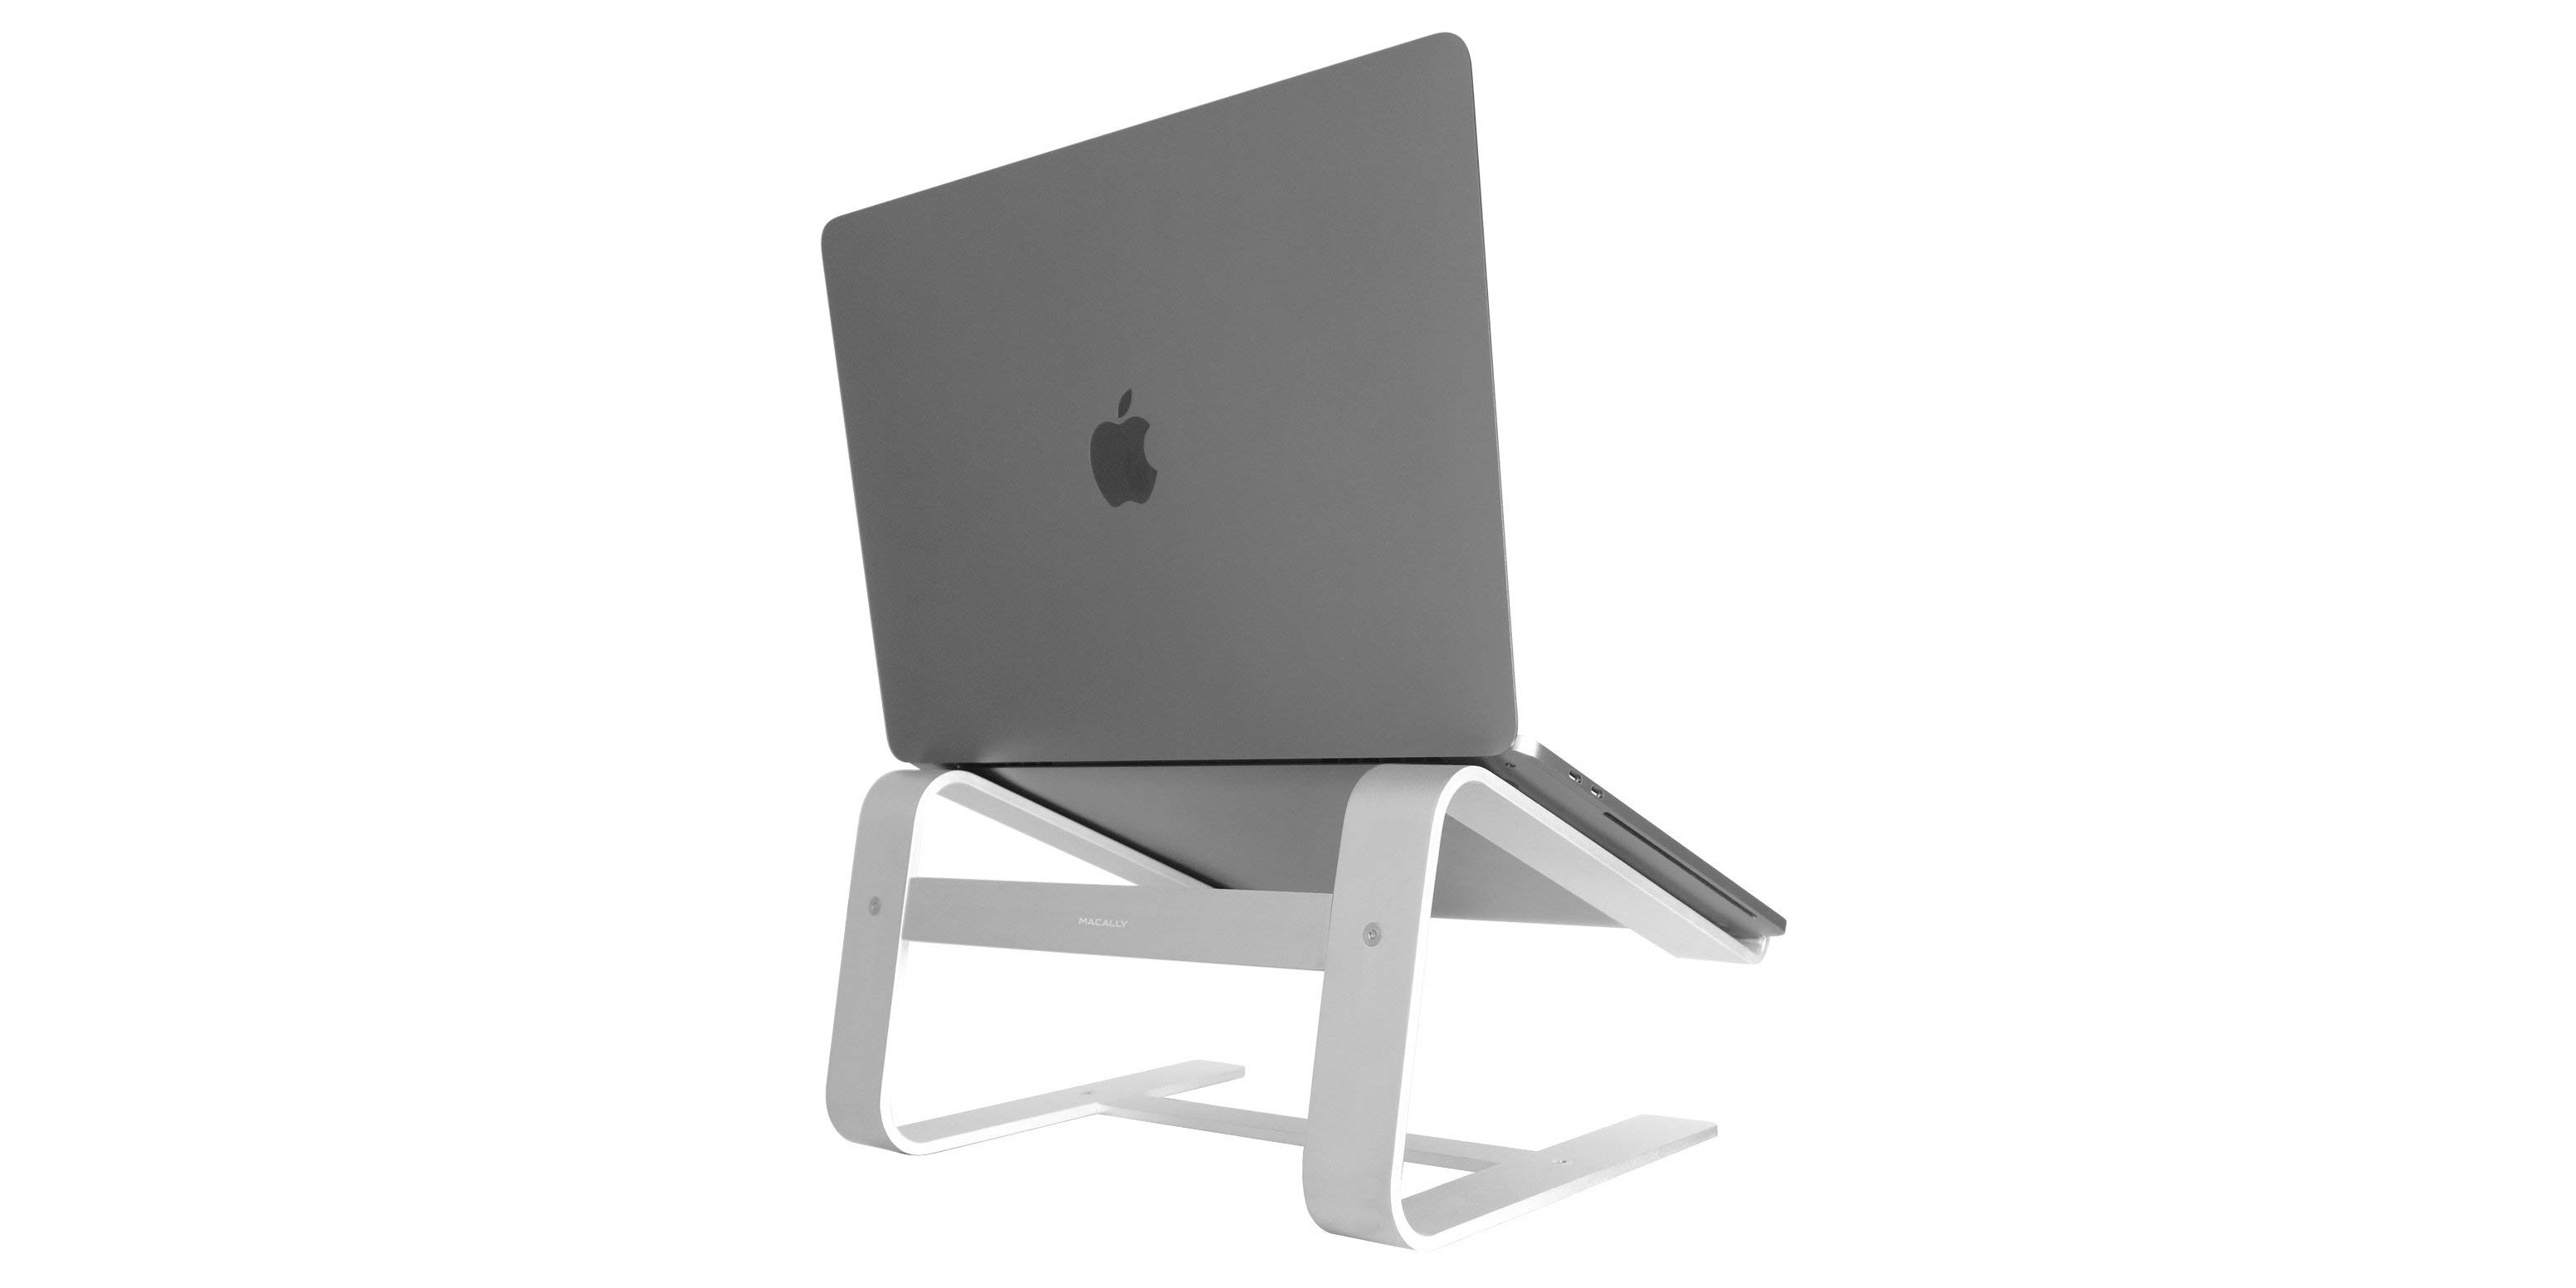 macally macbook stand